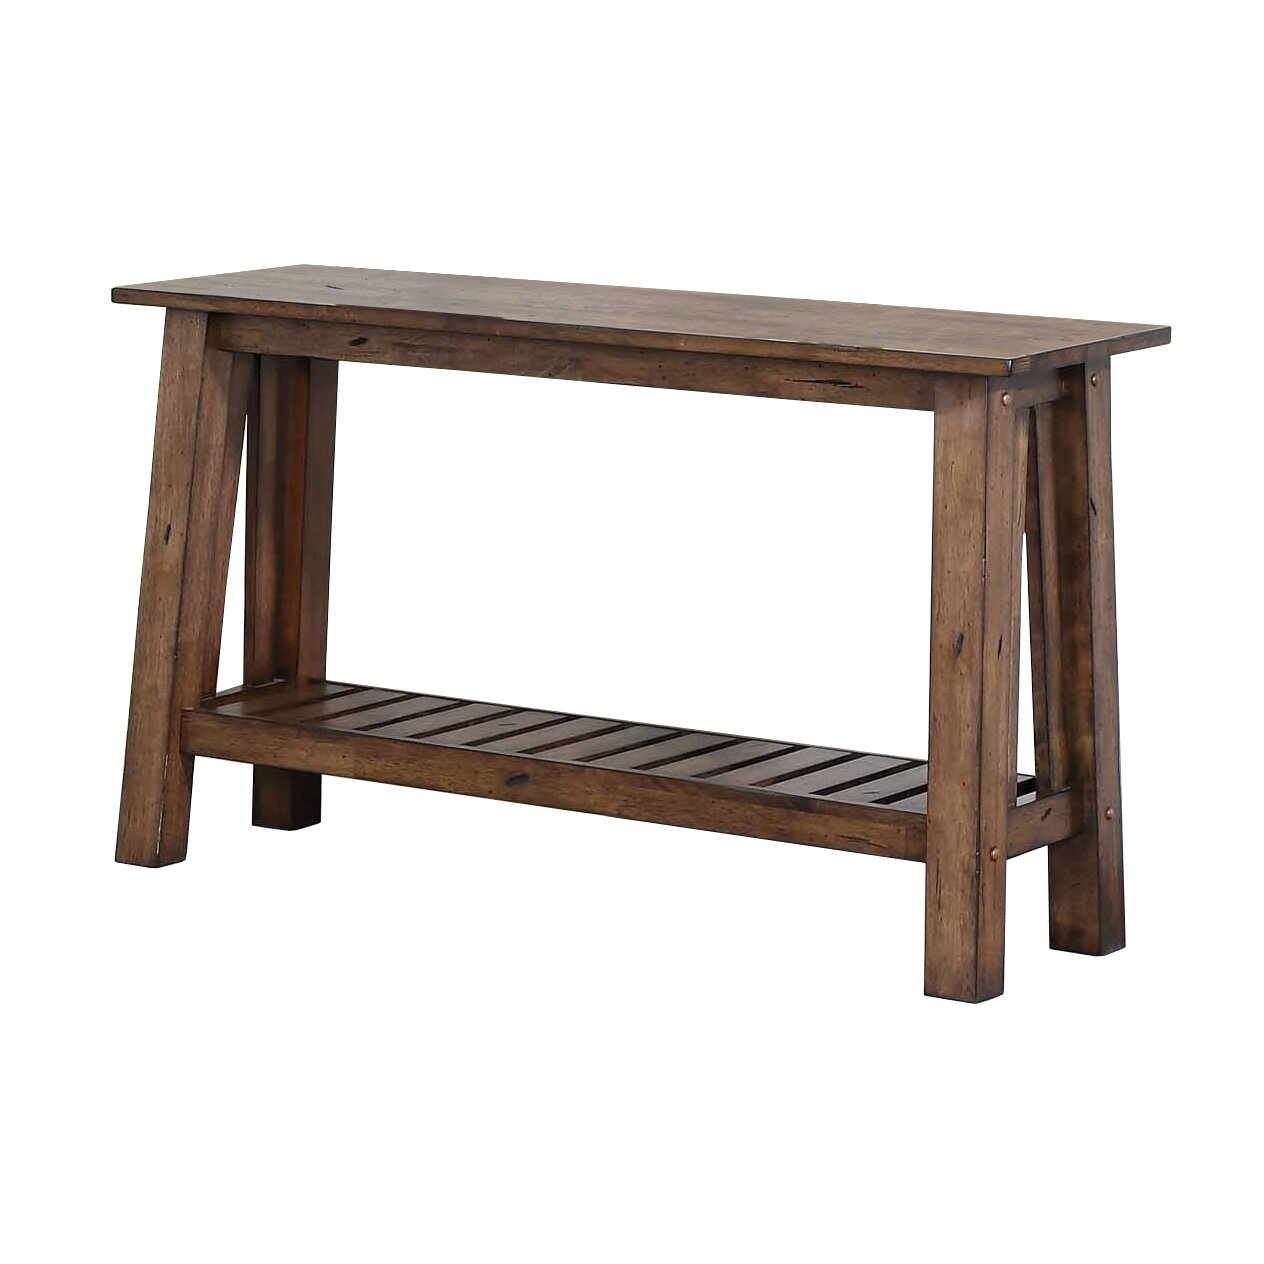 Laurel Foundry Modern Farmhouse Adaline Console Table & Reviews | Wayfair